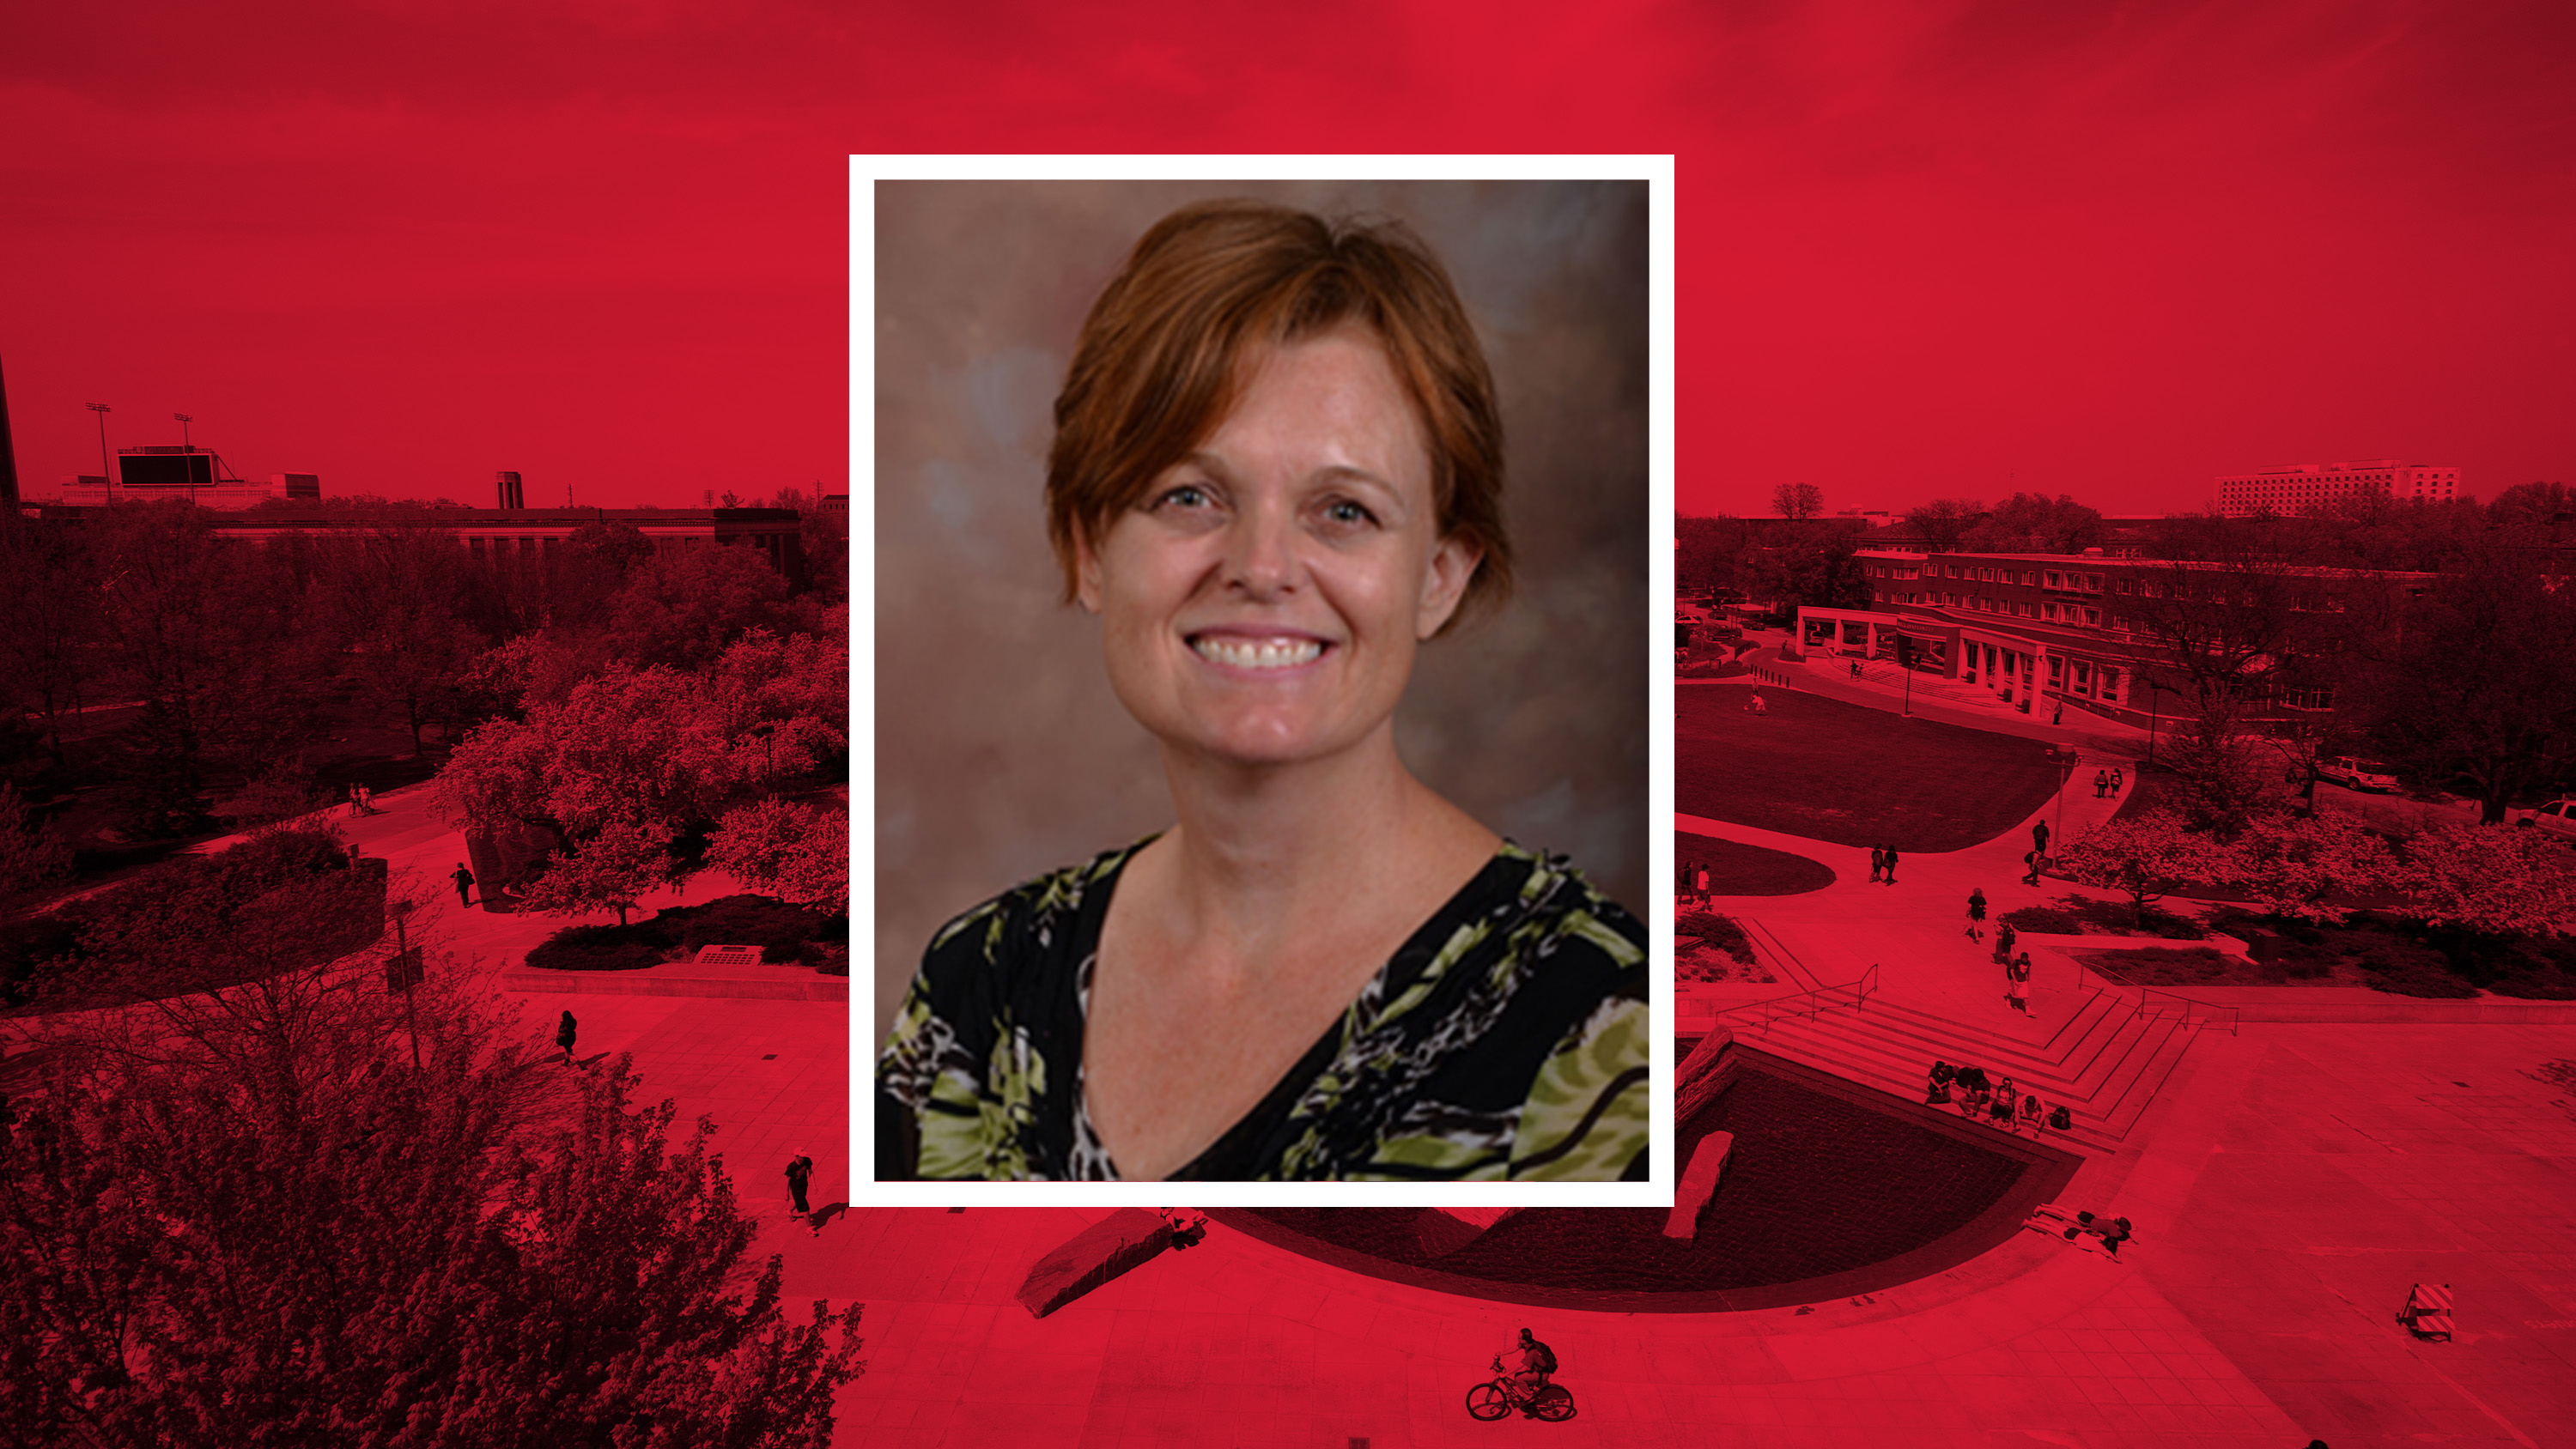 Tonya Haigh of SNR will present April 19 for the Department of Agronomy and Horticulture's spring seminar series.